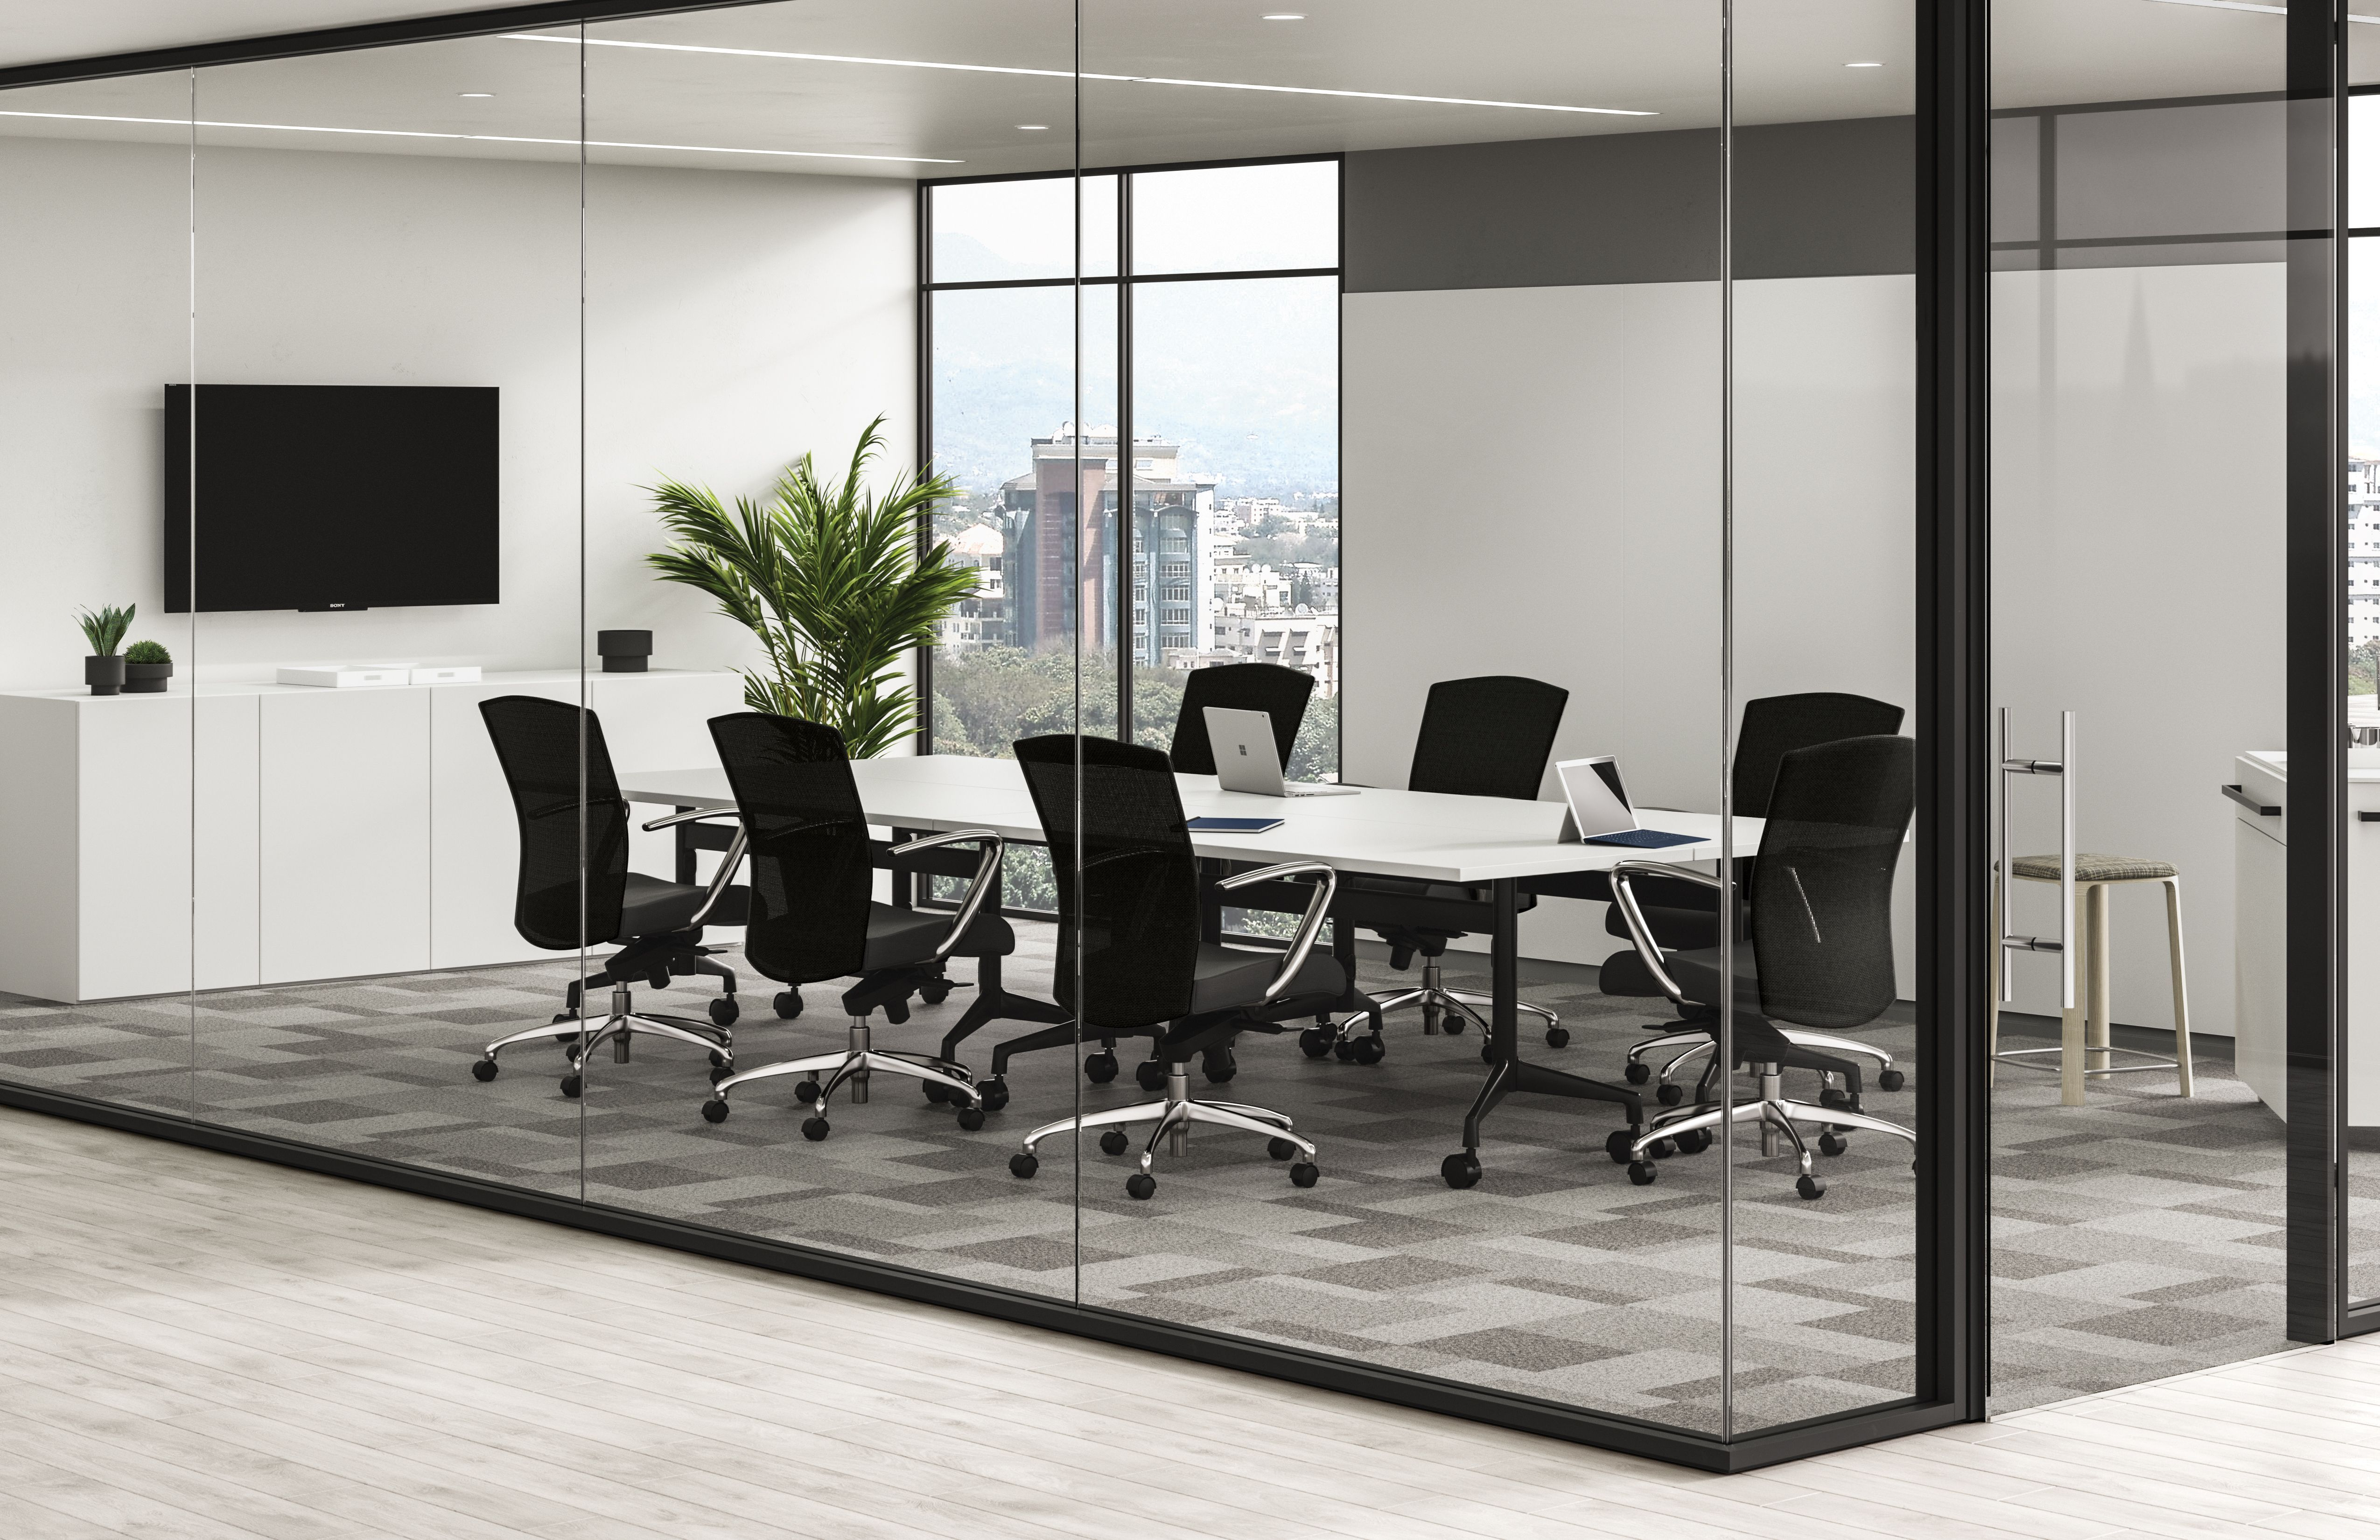 Credenza Conference Room : A conference room to gather and meet. with the connection of two